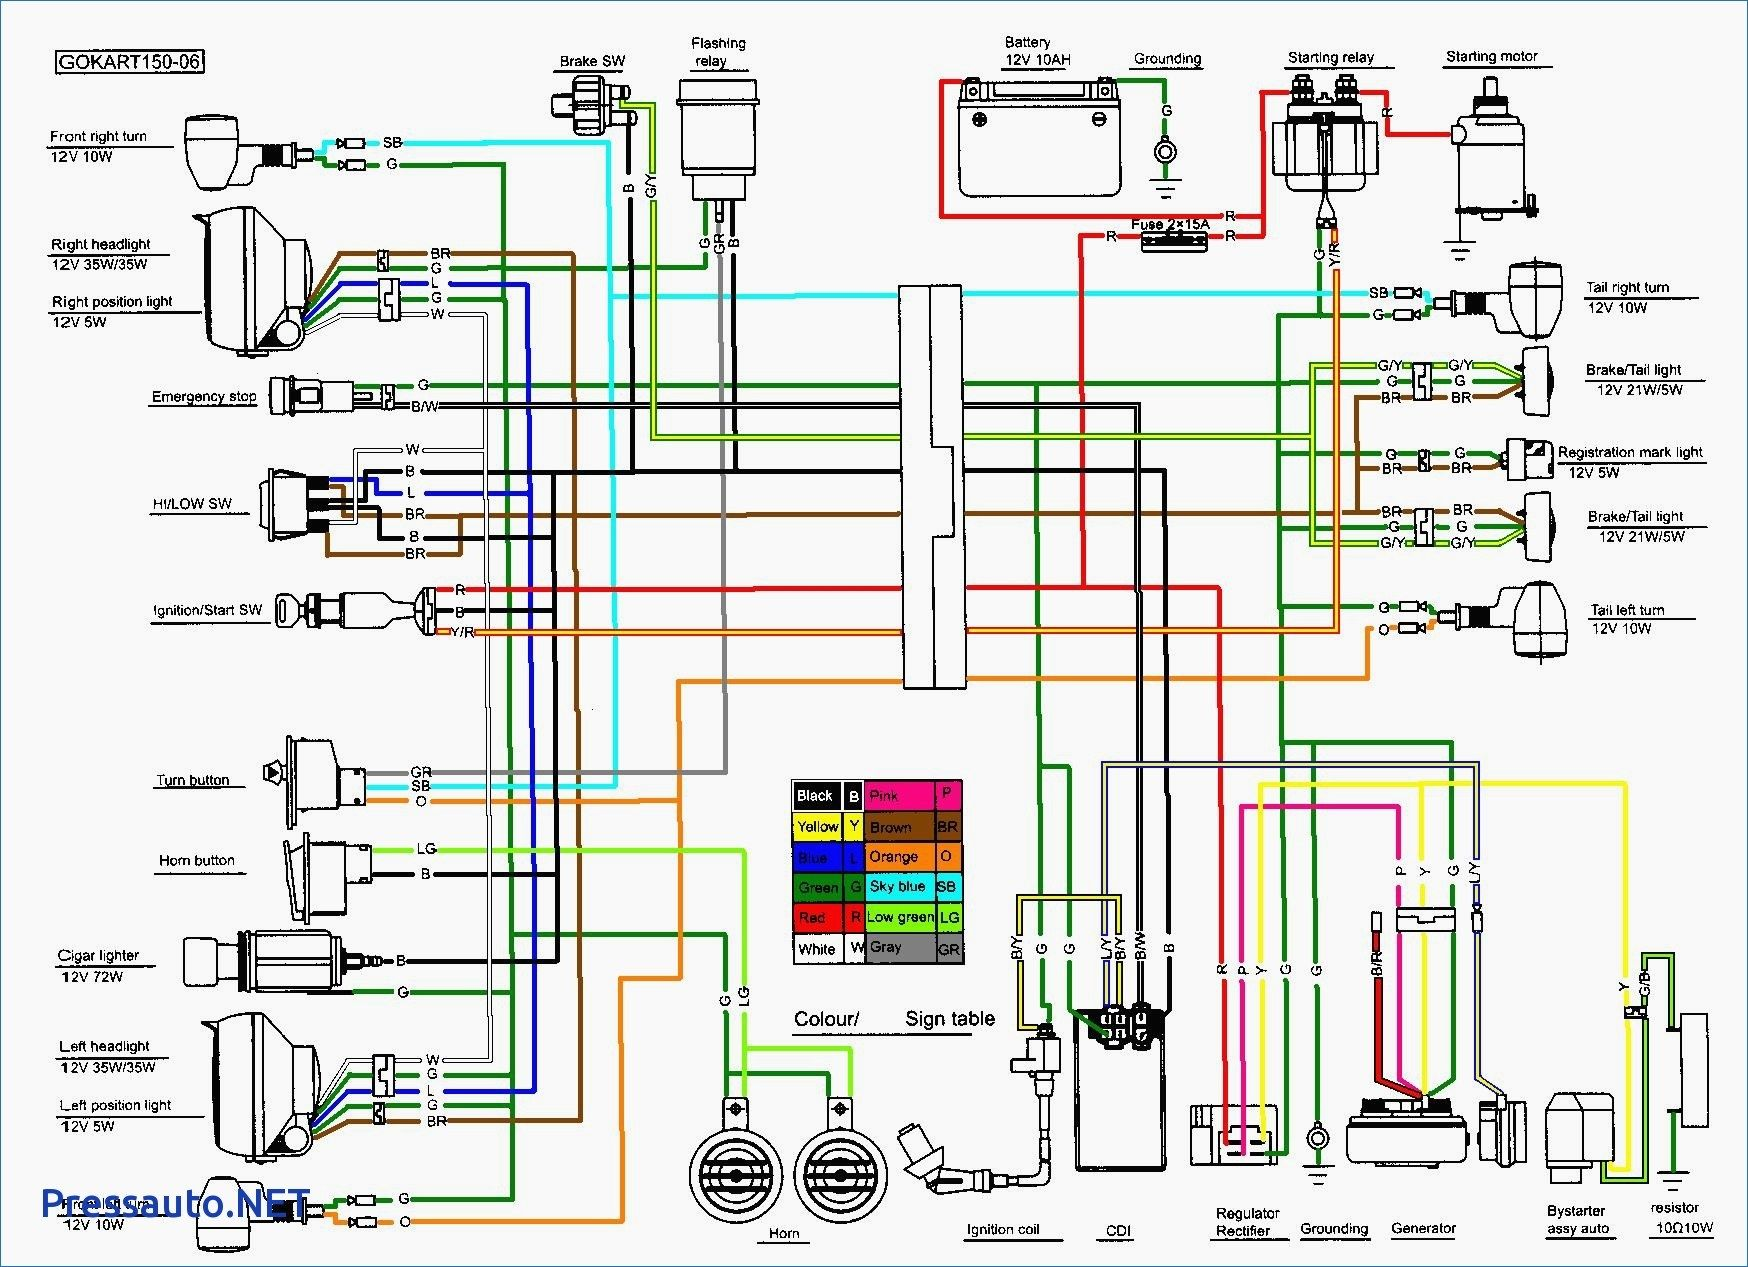 6 wire cdi wiring diagram dolgular com best of [ 1748 x 1267 Pixel ]